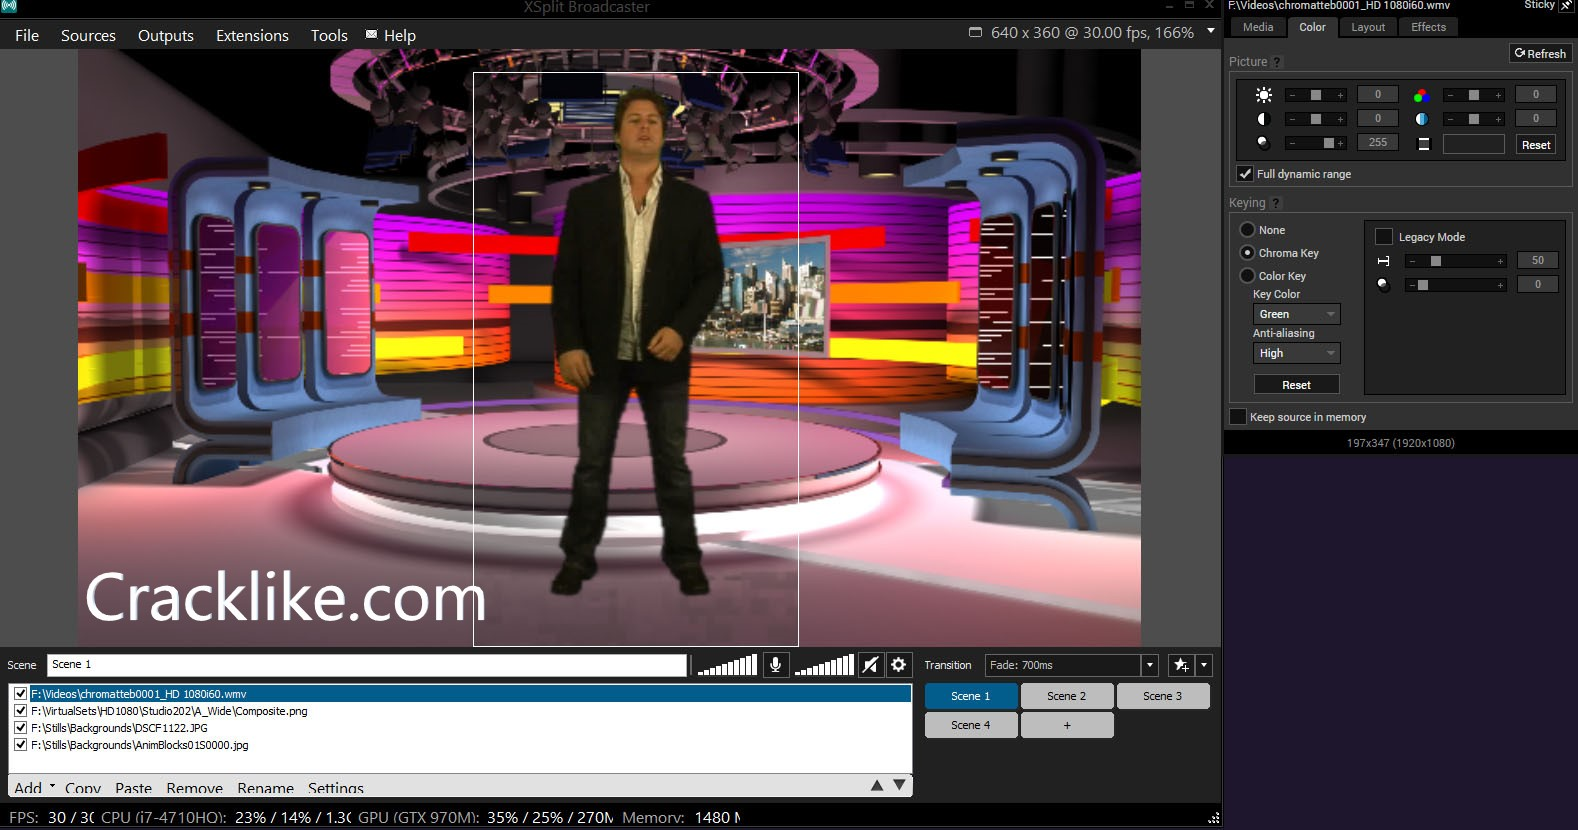 Xsplit Broadcaster 4.1.2102.2304 Crack With Serial Key Full Version Free Download 2021